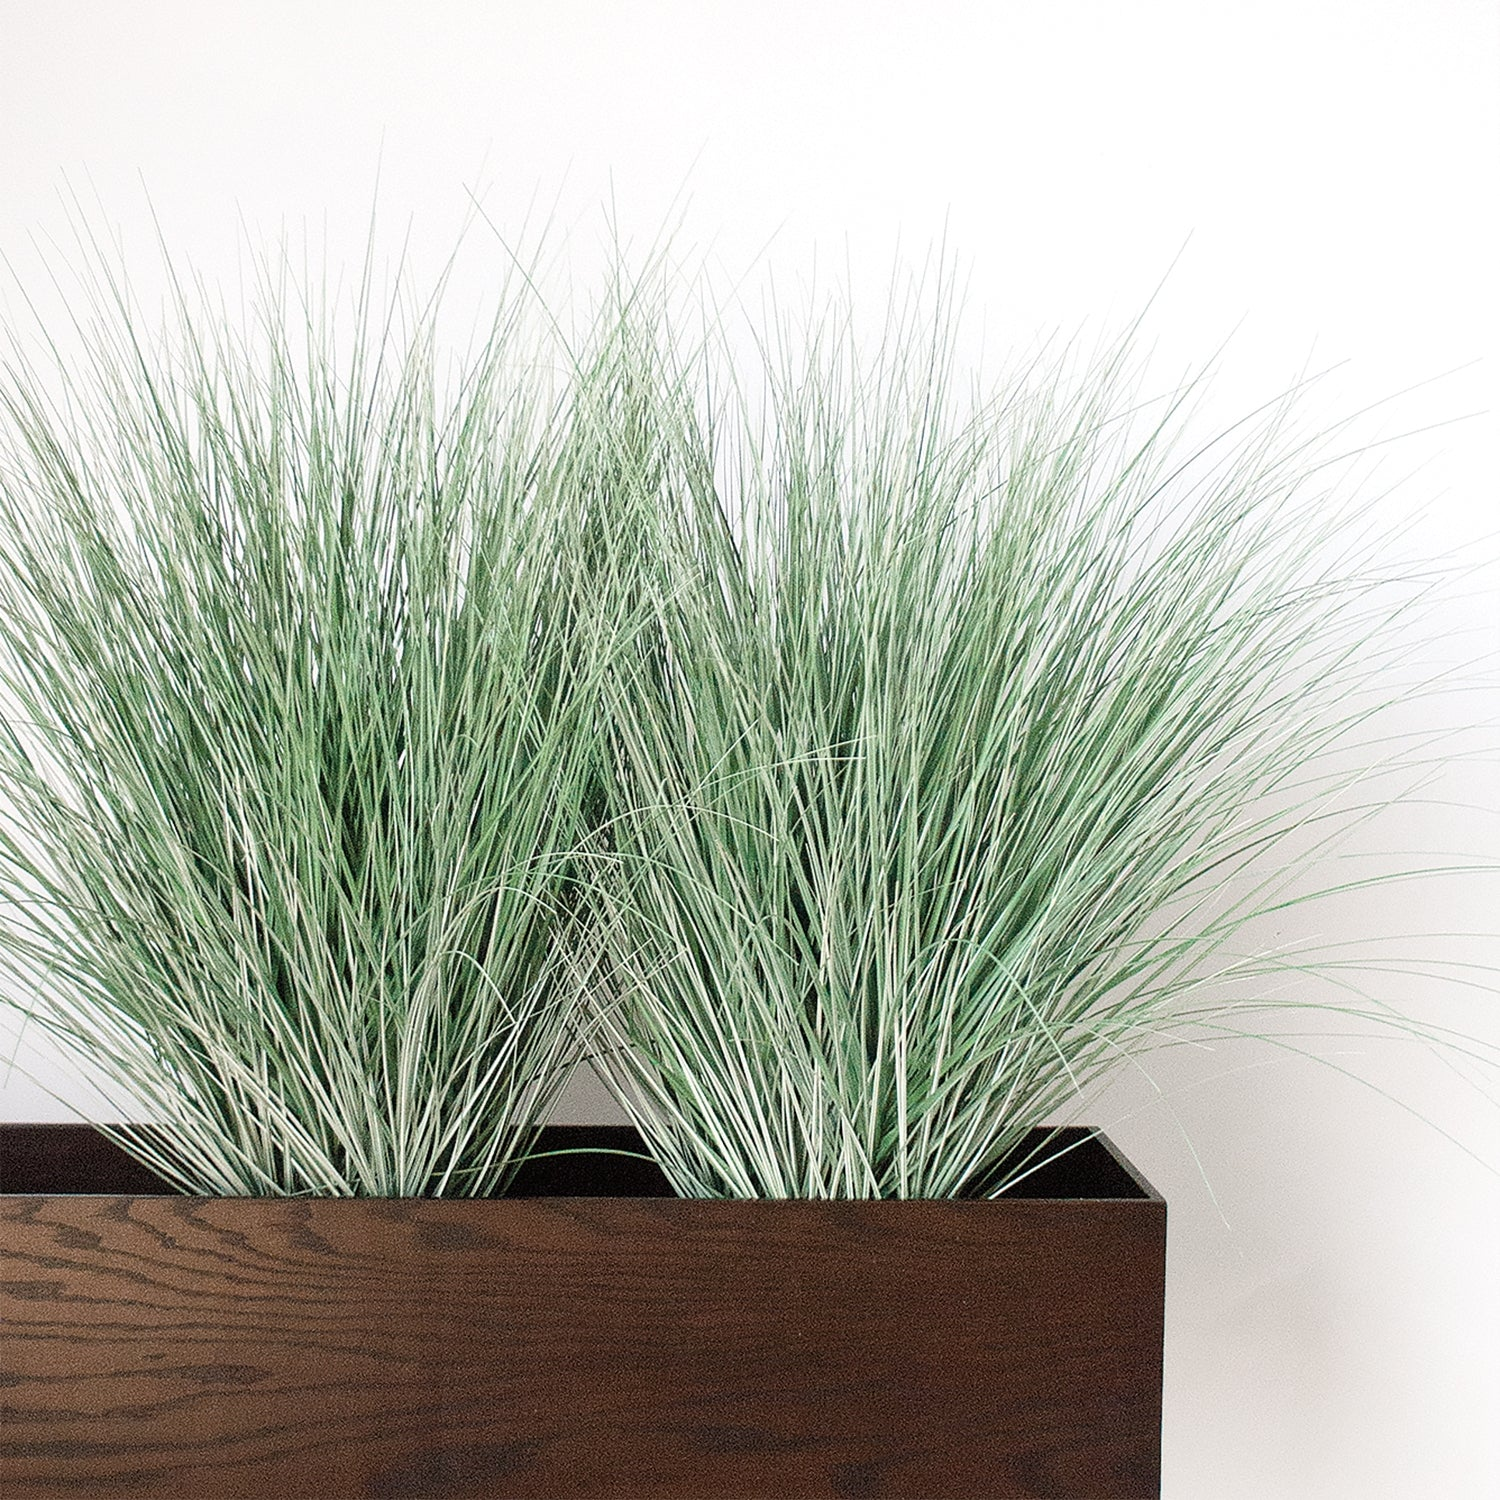 Grass: Bear Grass in DK Walnut Rectangle Planter